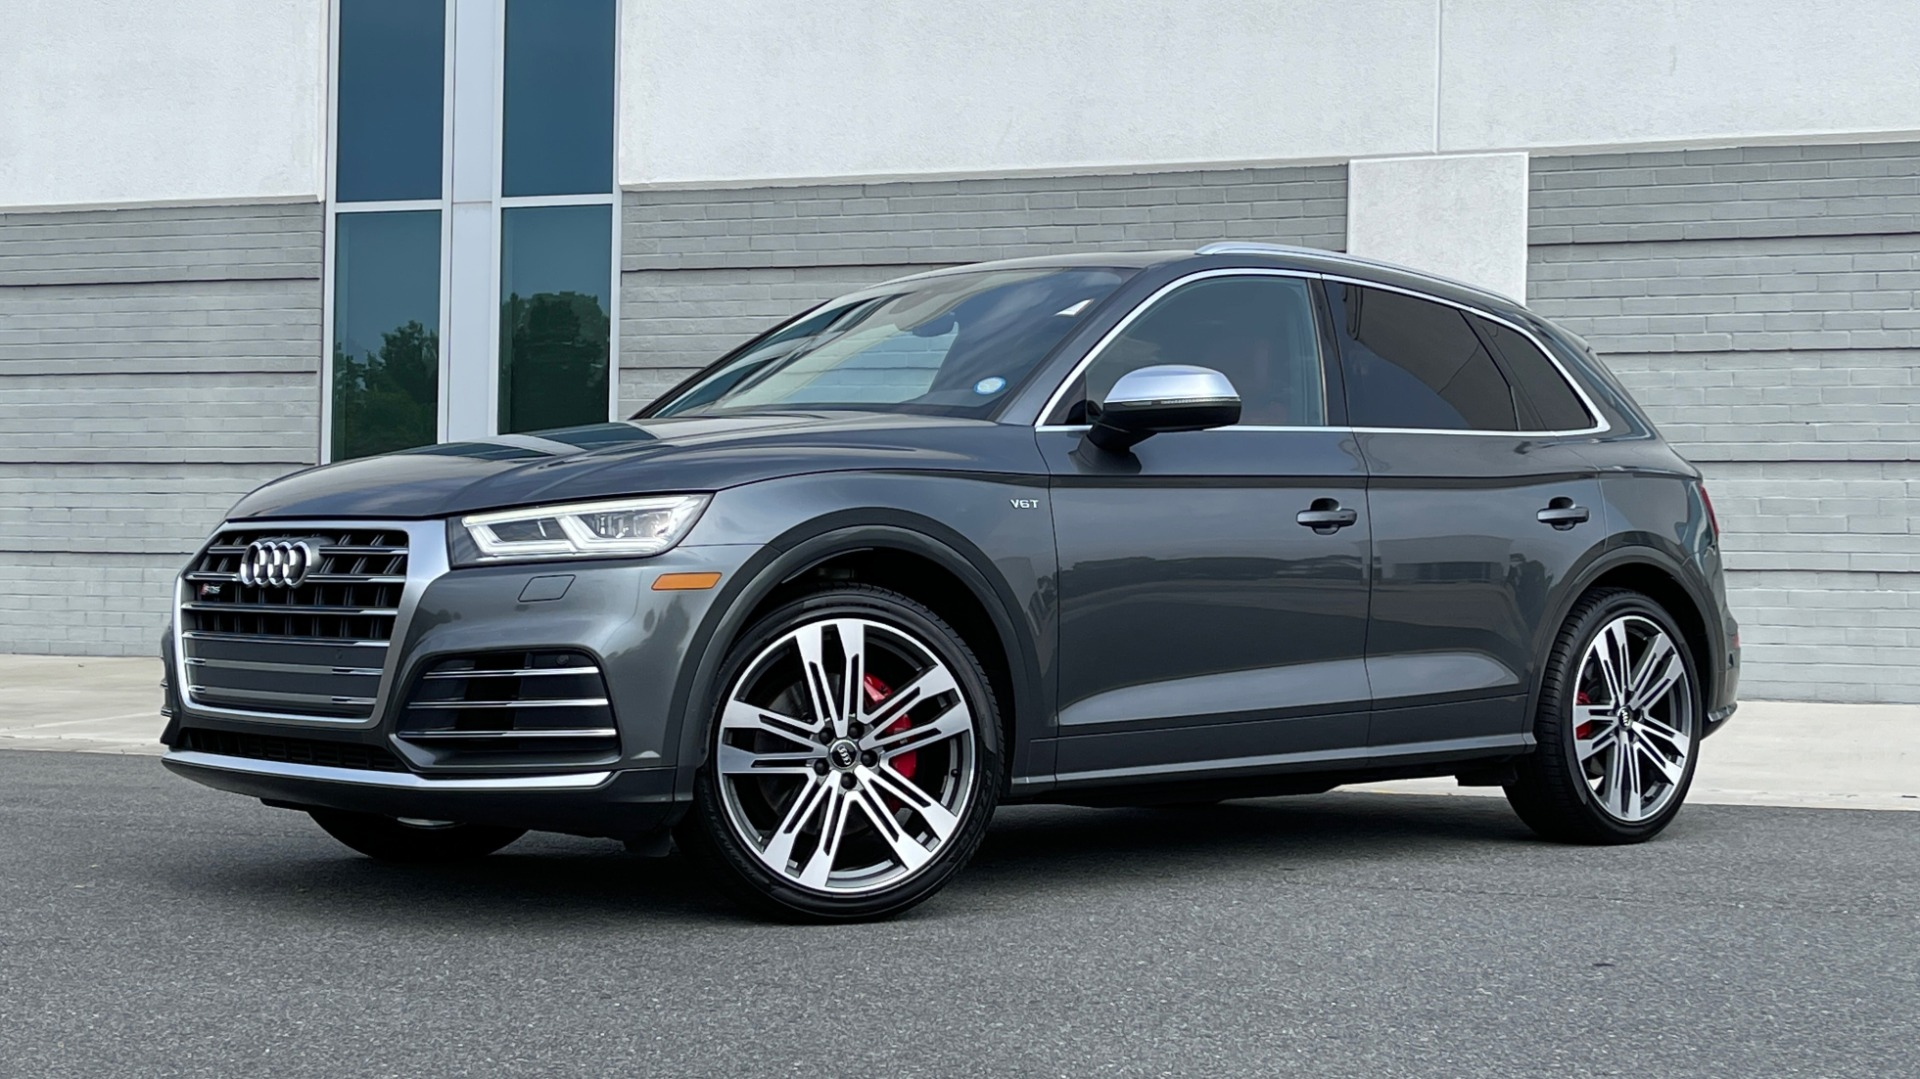 Used 2018 Audi SQ5 PREMIUM PLUS / S-SPORT / NAV / B&O SND / SUNROOF / REARVIEW for sale $43,995 at Formula Imports in Charlotte NC 28227 1